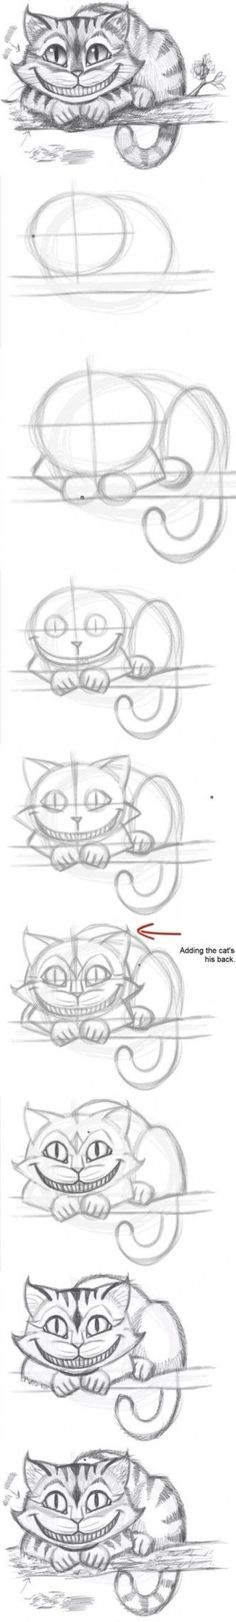 Meine Disney Zeichnung - Cheshire Cat from Alice In Wonderland. How to draw the Cheshire Cat - Logischesmädchen 44 - Pin Drawing Sketches, Cool Drawings, Drawing Ideas, Drawing Tips, Sketching, Drawing Stuff, Sketch Ideas, Easy Sketches, Simple Drawings